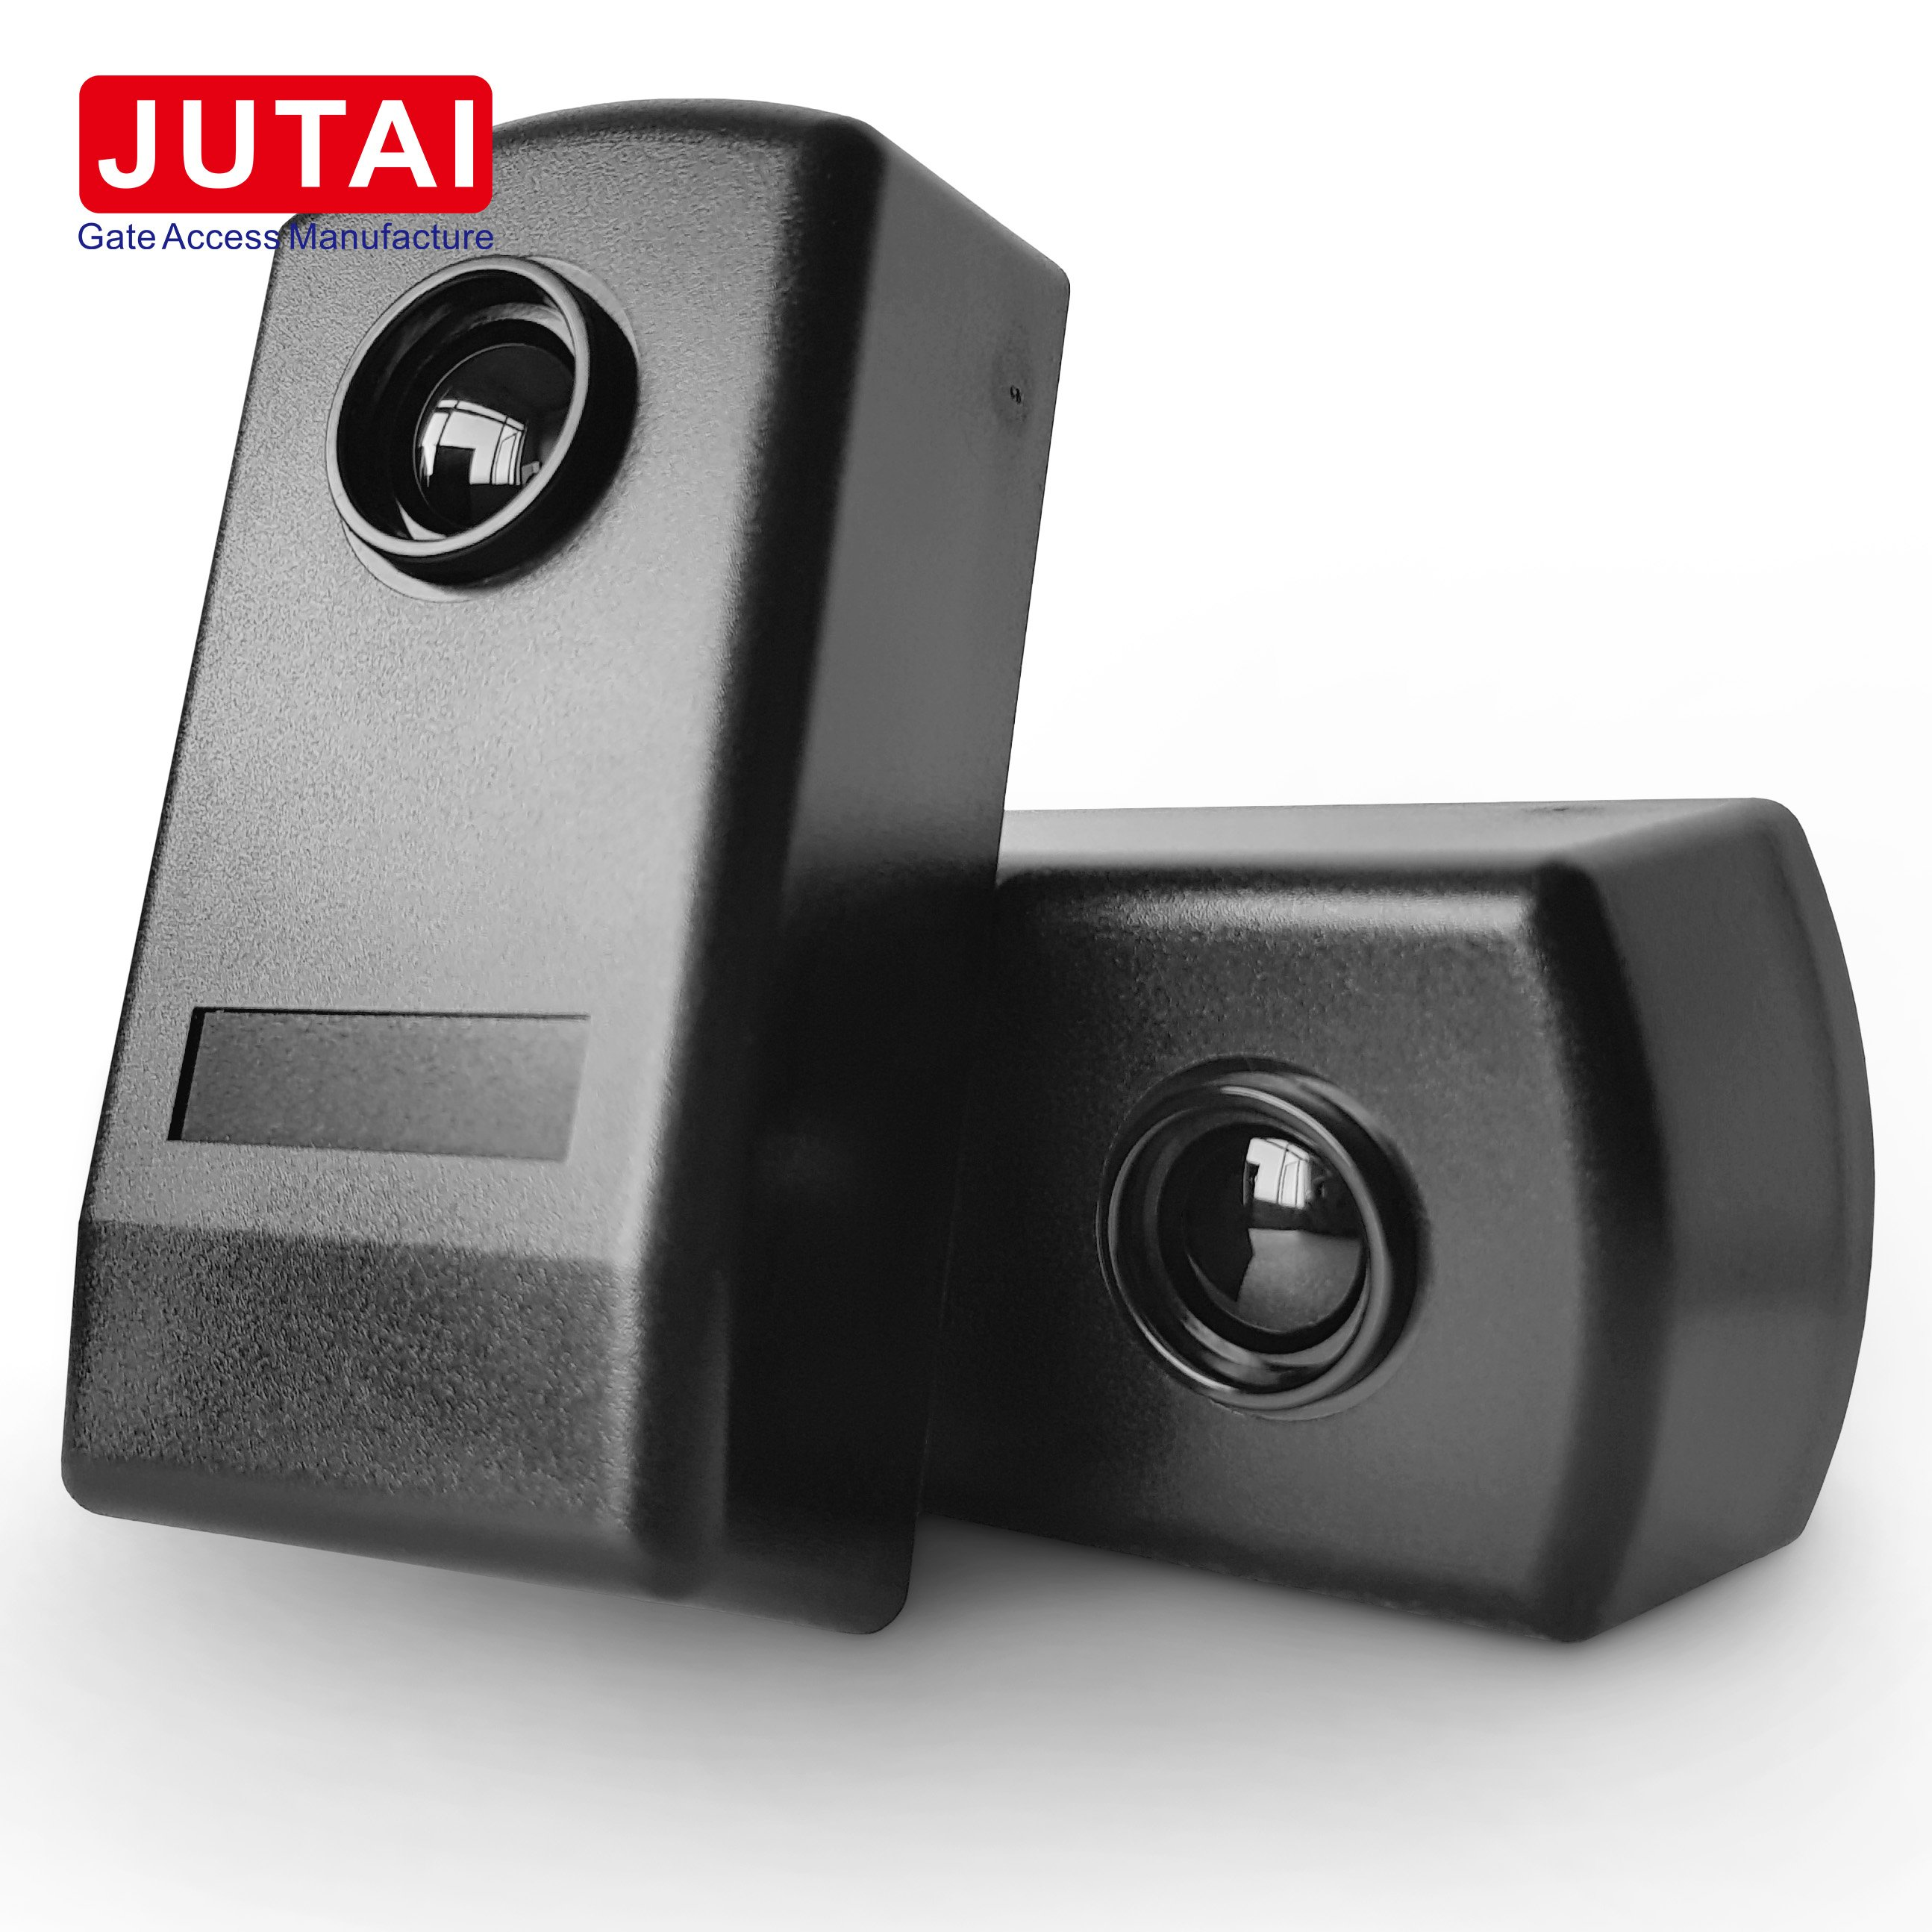 Infrared Photocell Beam Sensors For Automatic Gate Access System